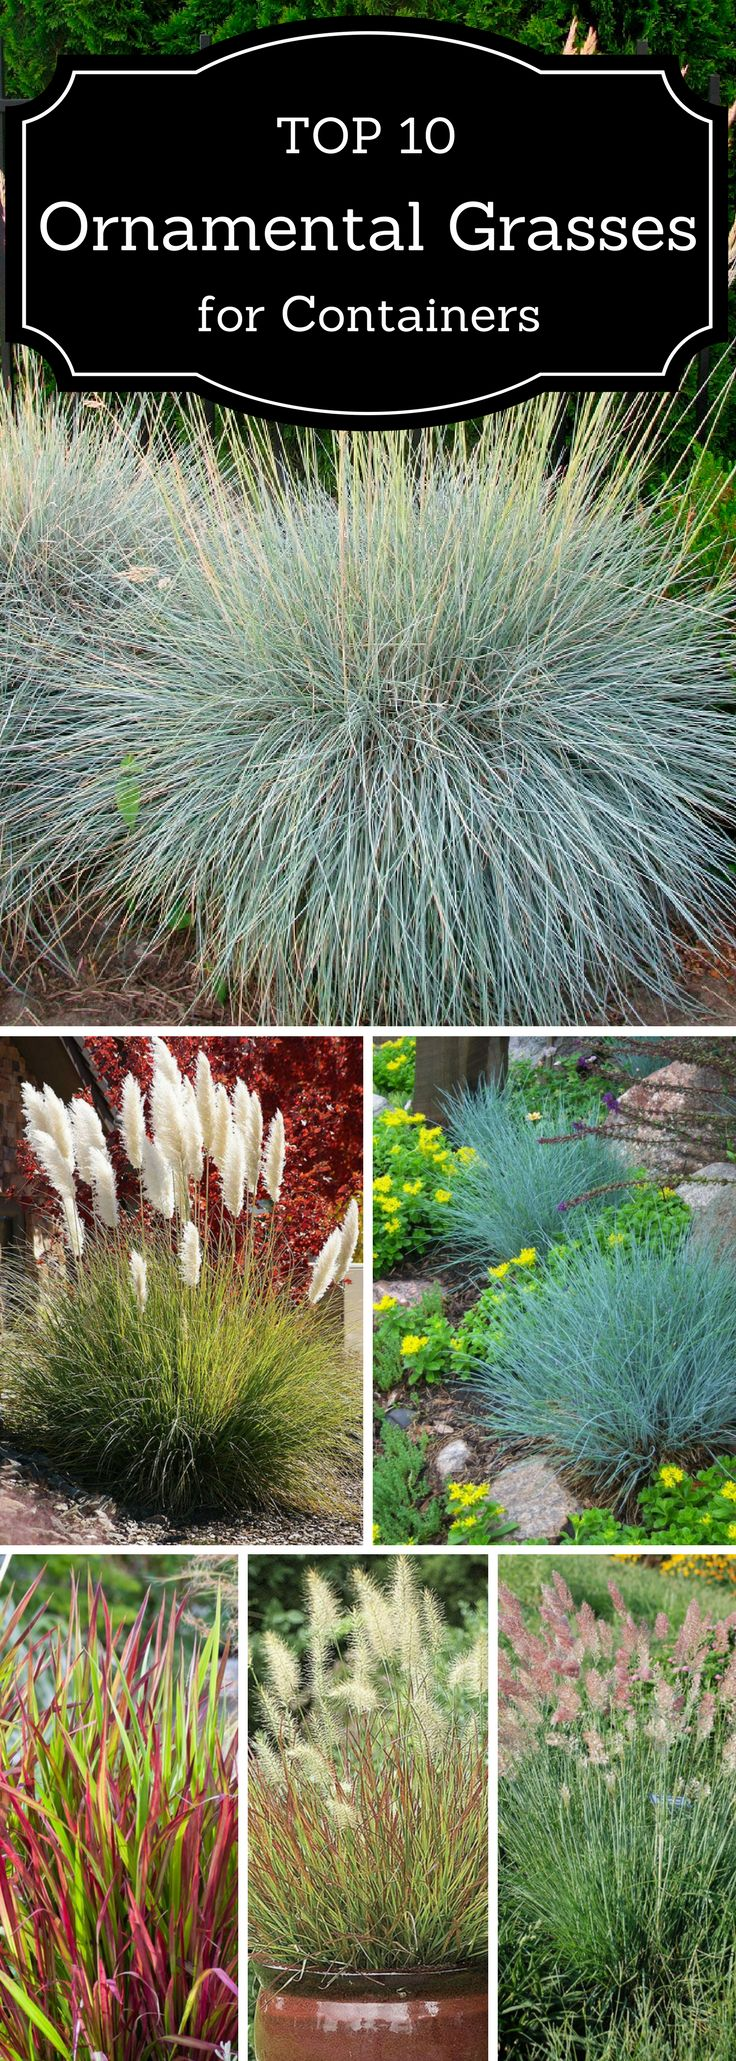 Best 25 ornamental grasses ideas on pinterest landscape for Ornamental grass in containers for privacy